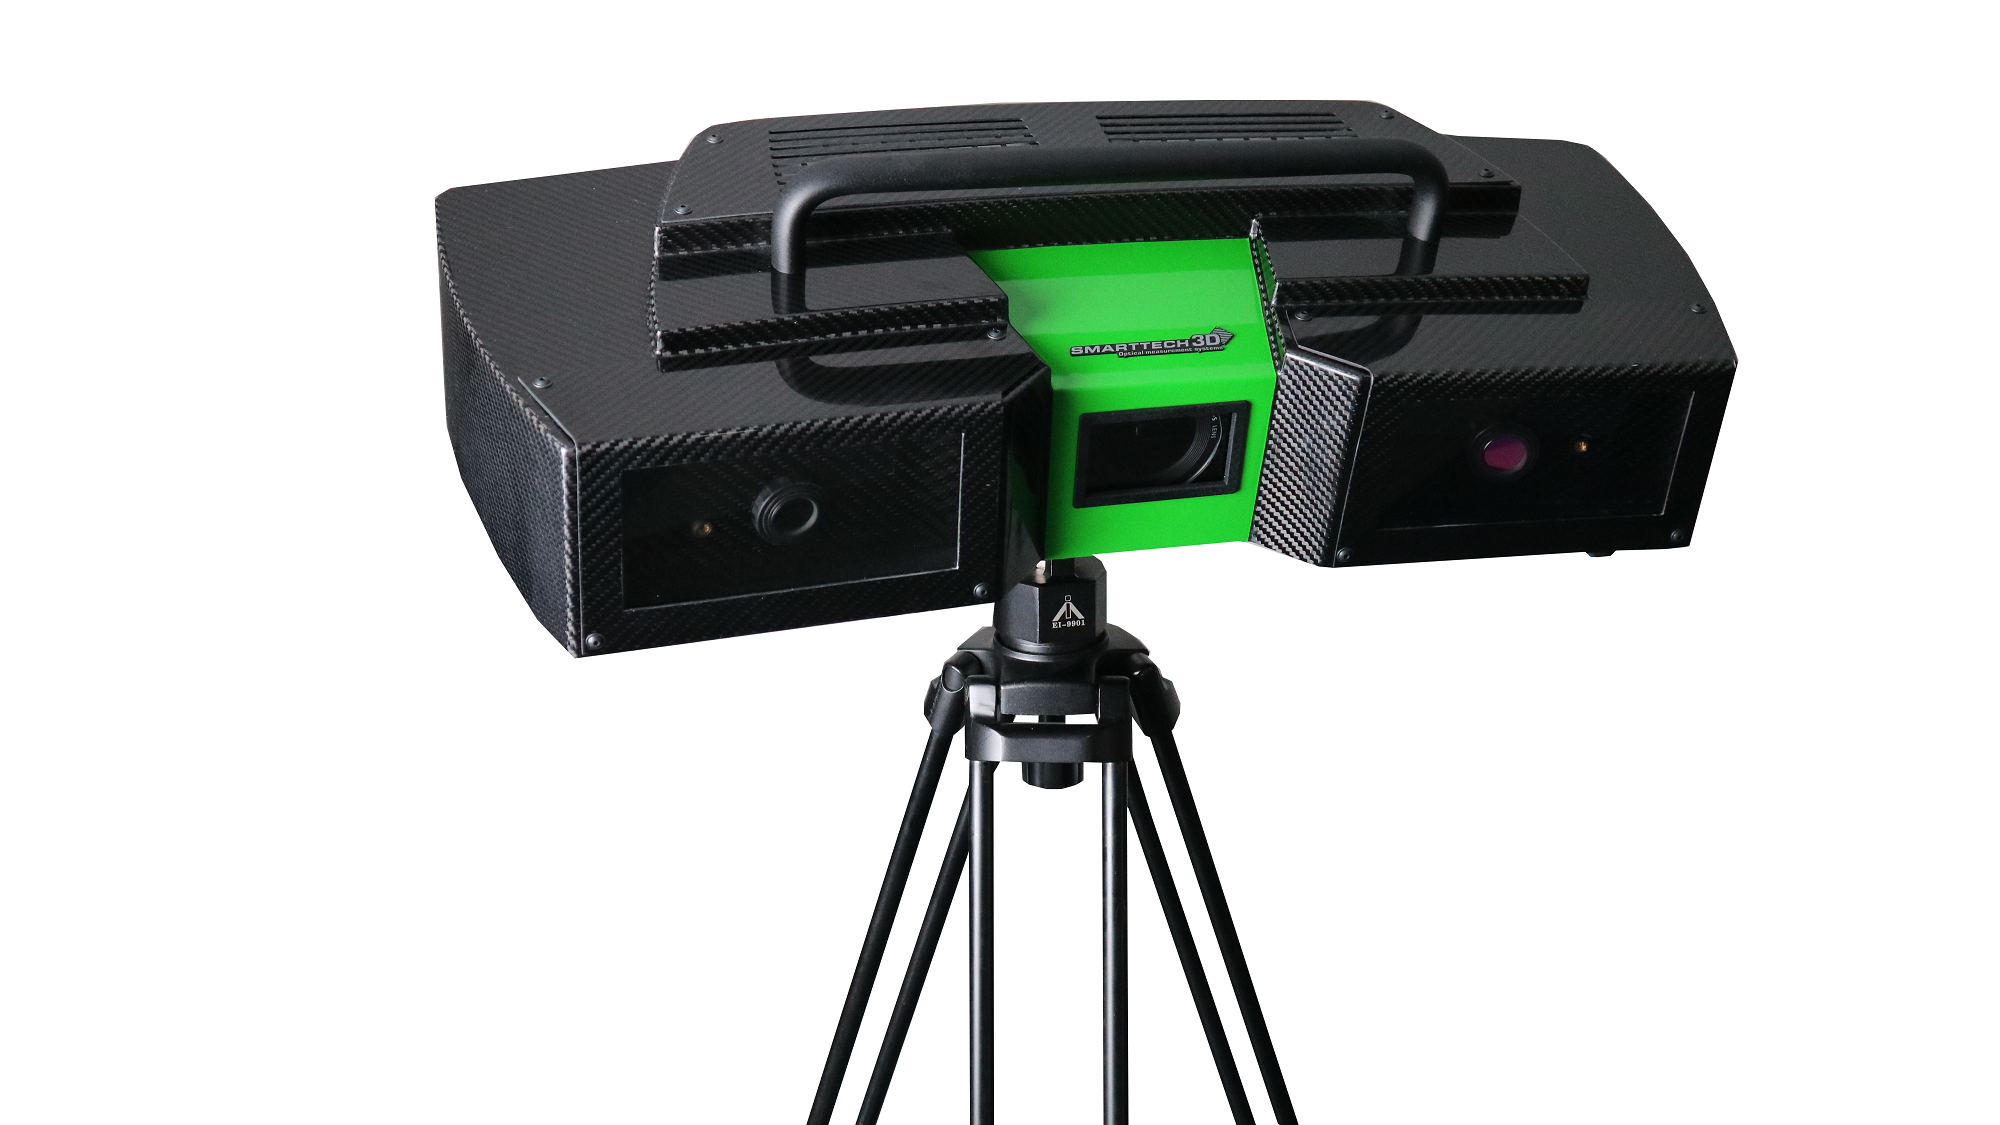 MICRON3D green stereo